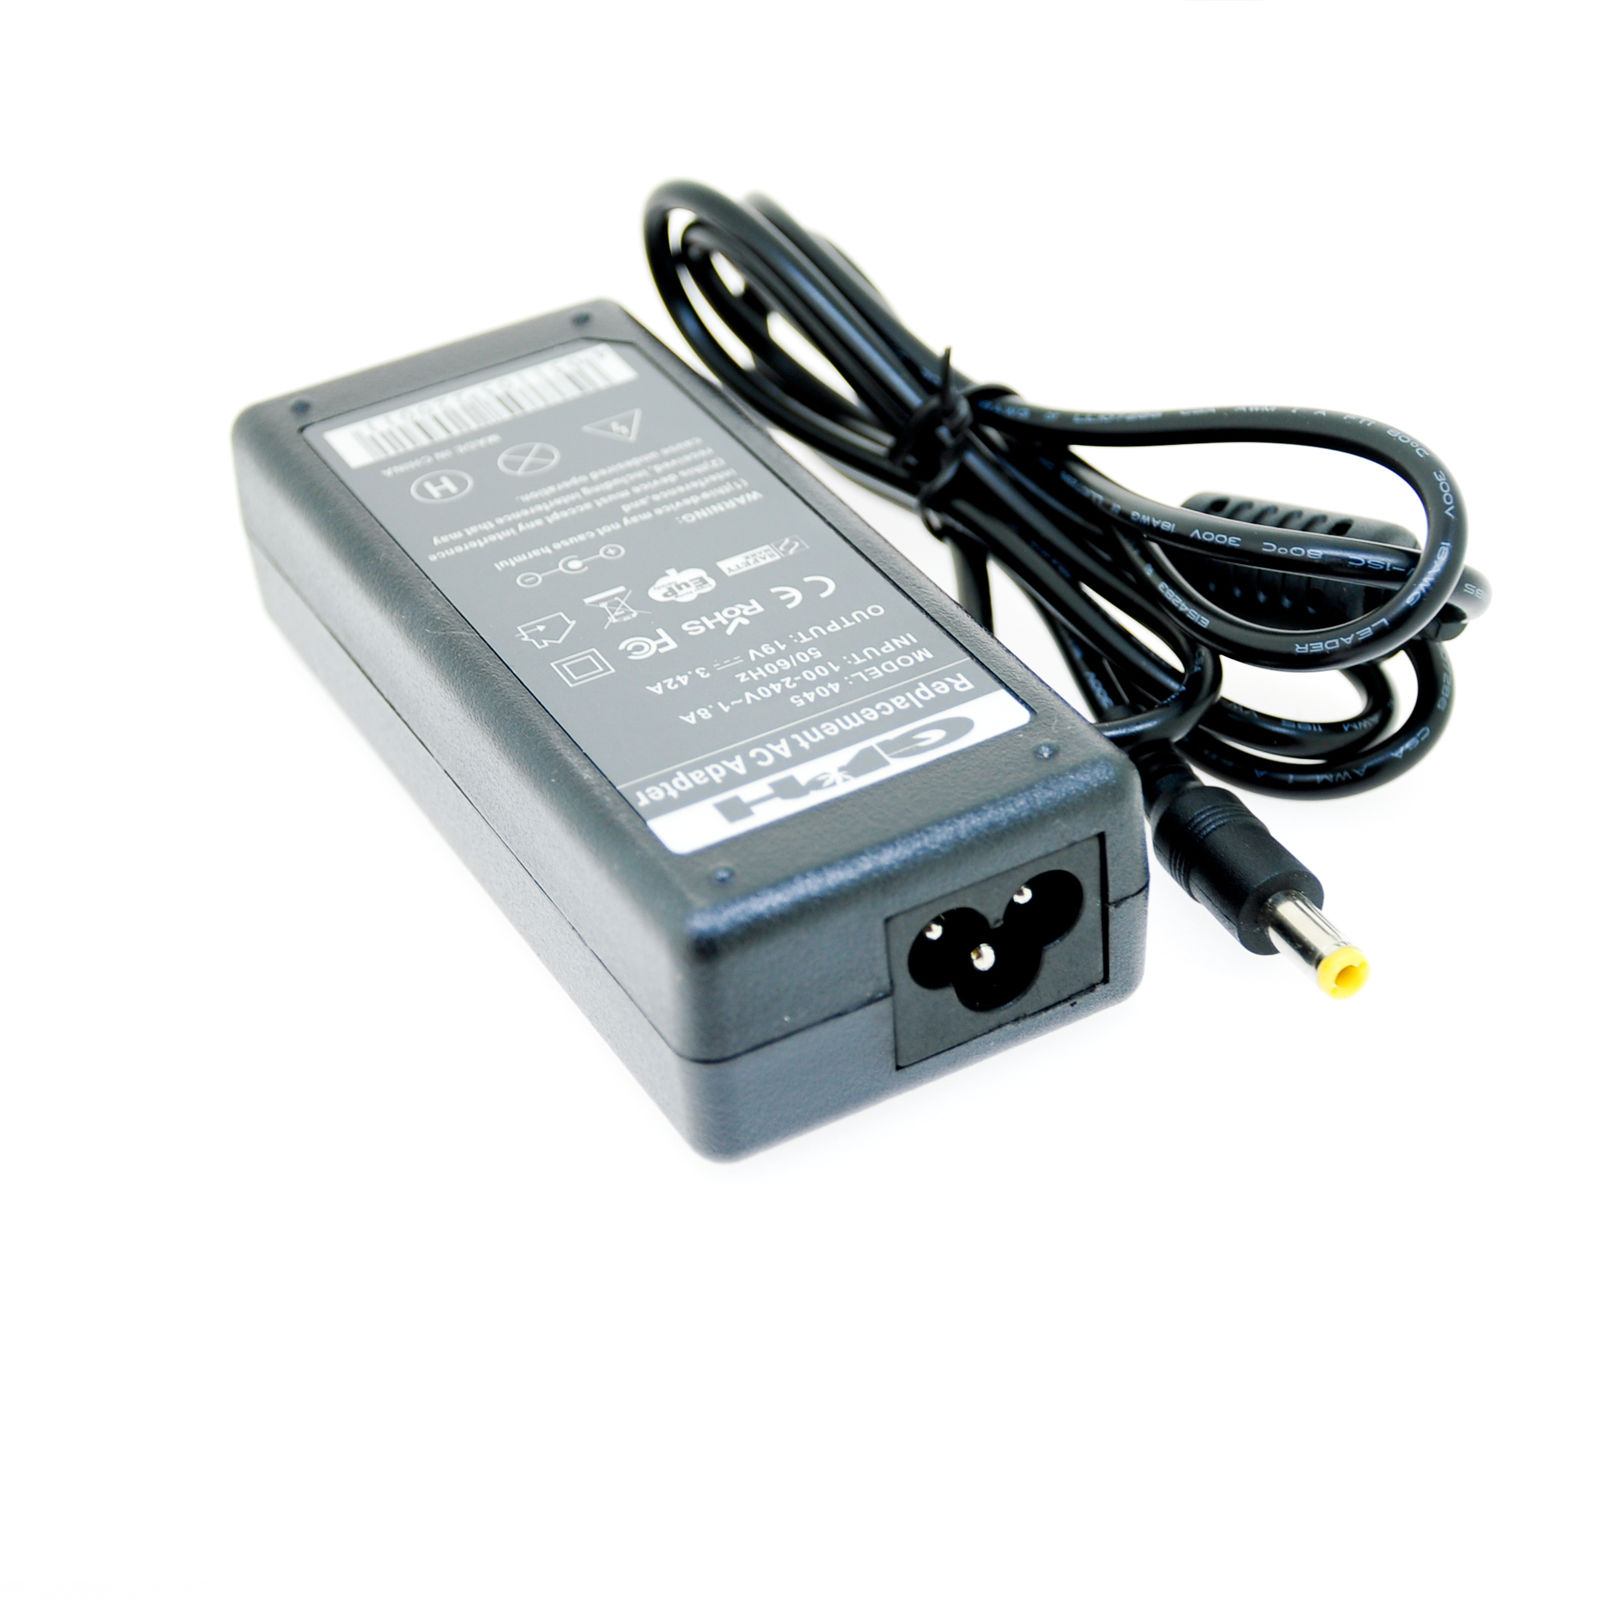 65w Chargeur Pour MSI MS1022 MS1024 MS-1022 MS